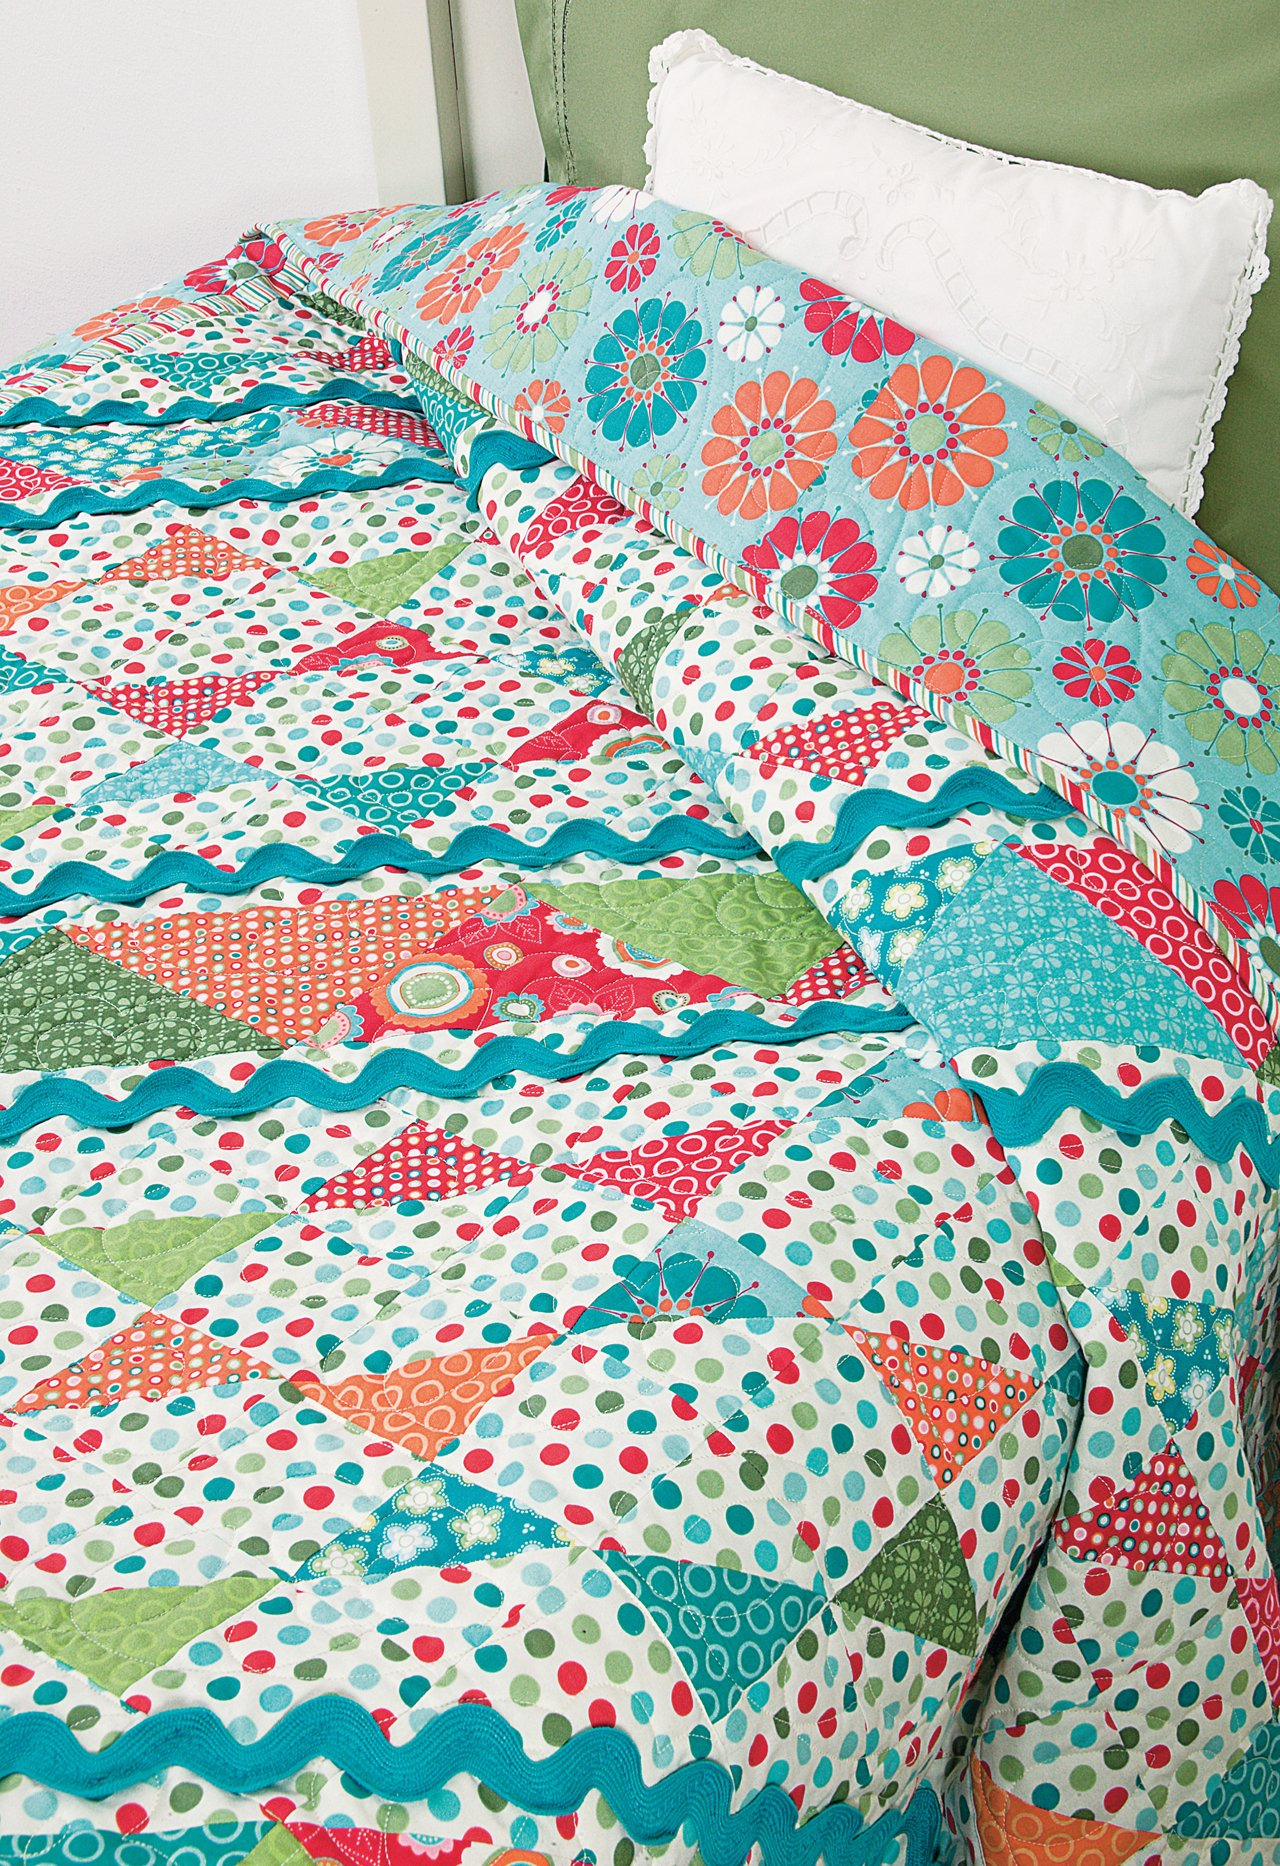 Easy Quilts for Beginners and Beyond: 14 Quilt Patterns from Quiltmaker Magazine by That Patchwork Place (Image #23)